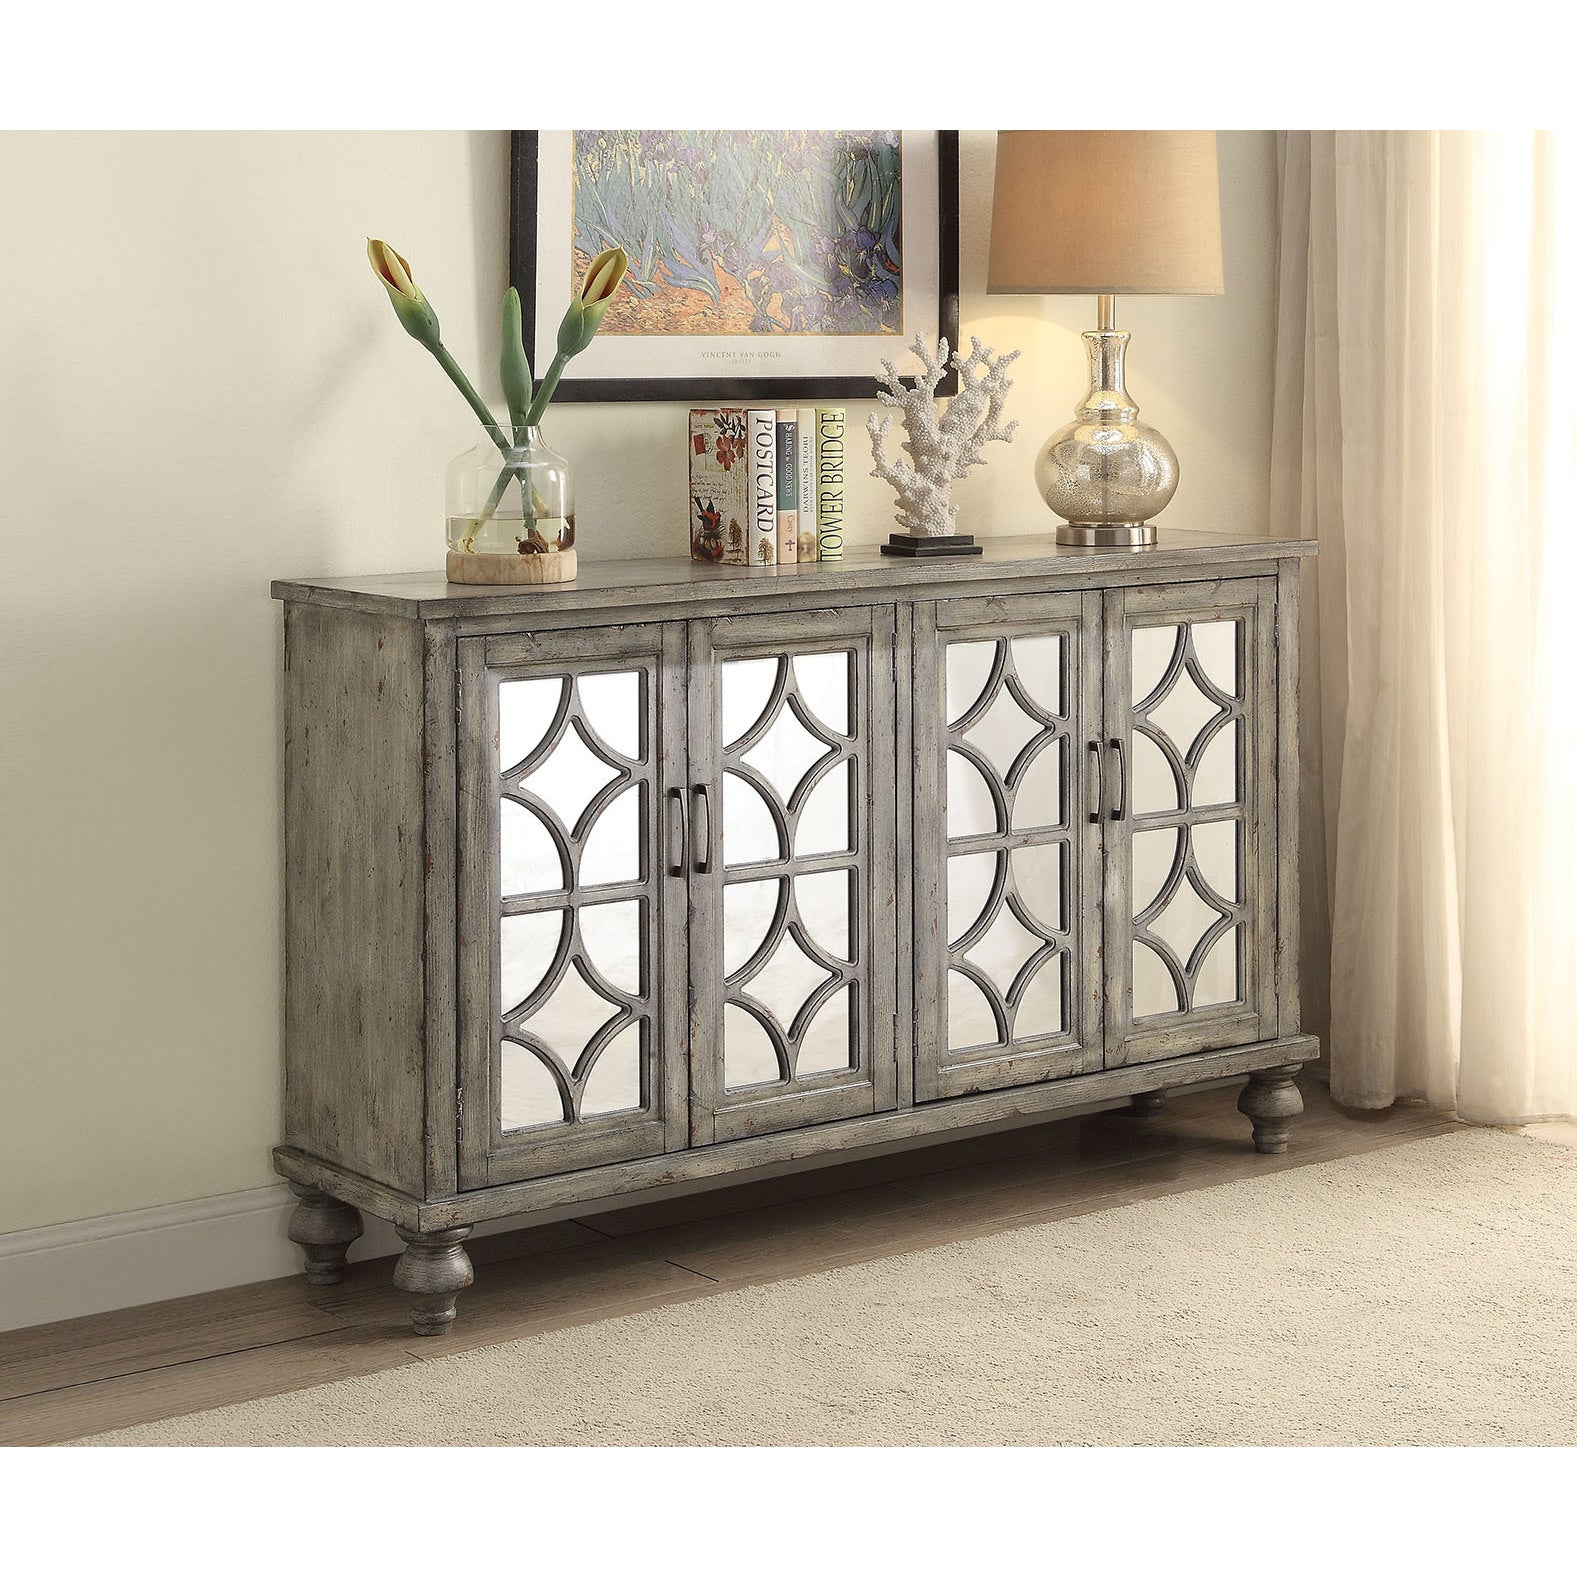 Shop Acme Furniture Velika Weathered Gray 4 Door Console Table